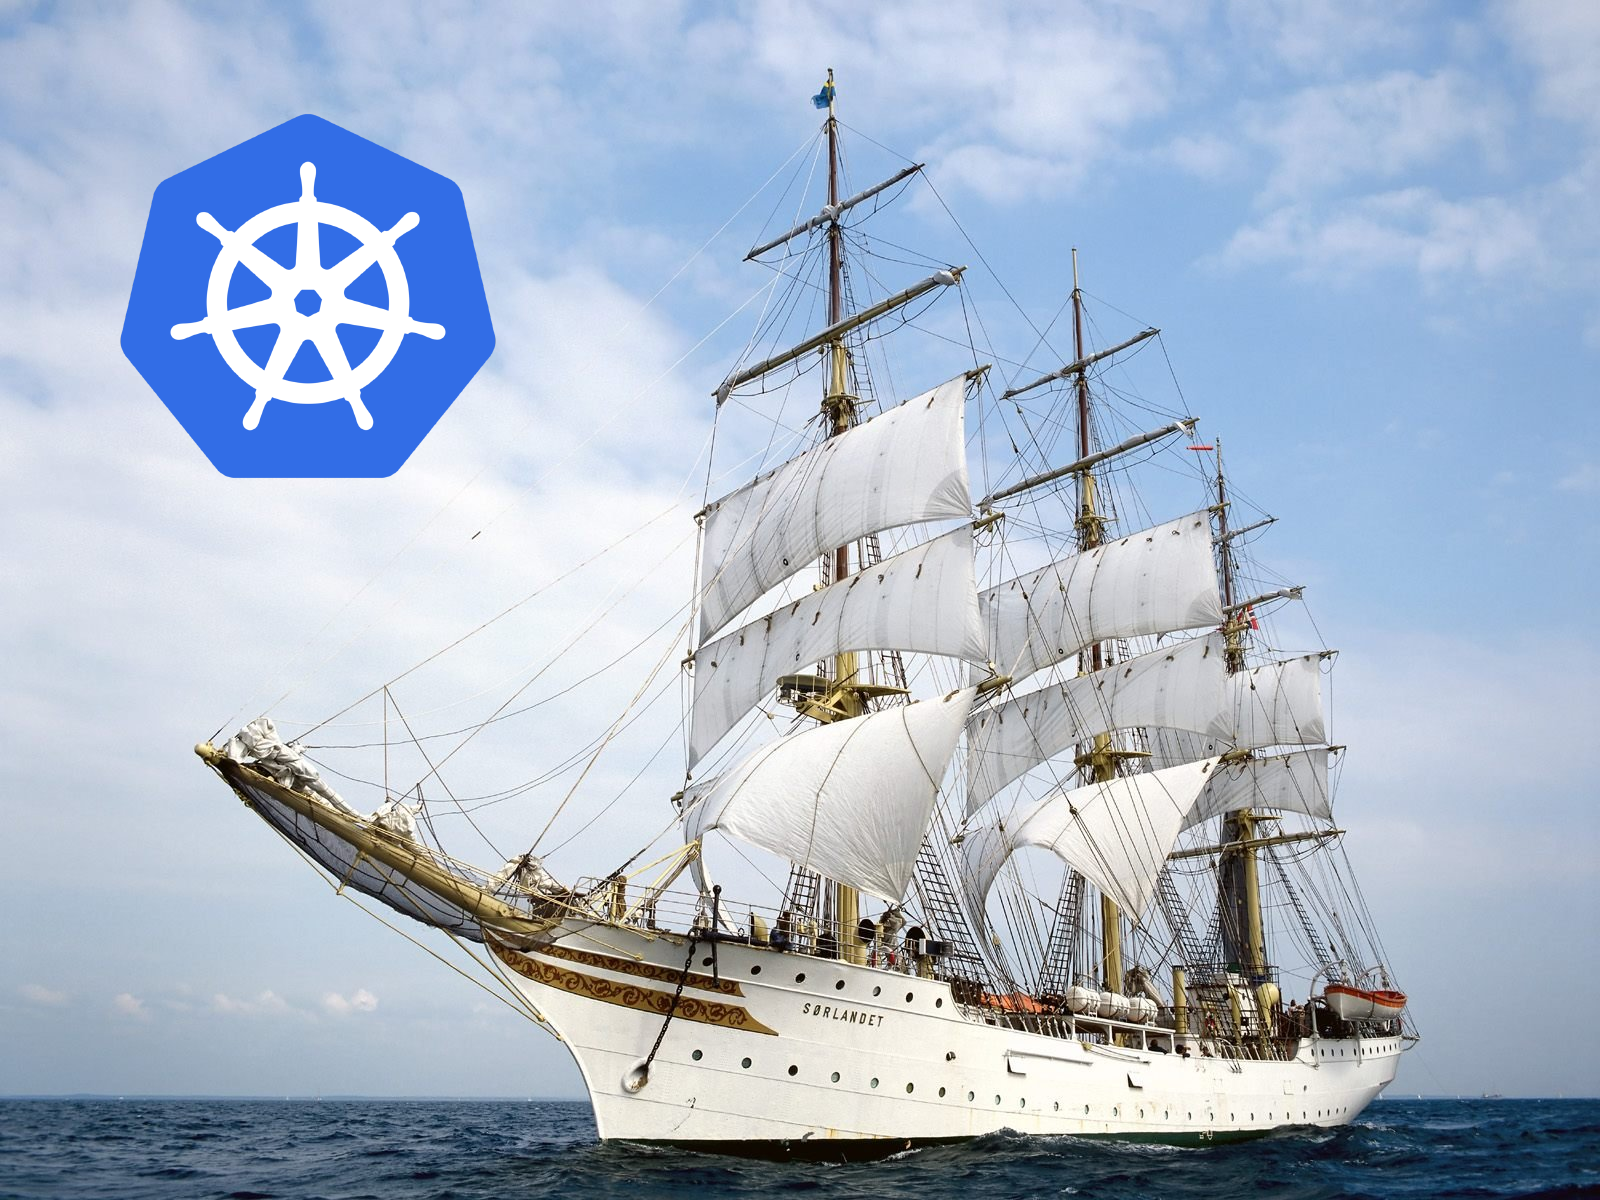 Writing yet another Kubernetes templating tool - 1